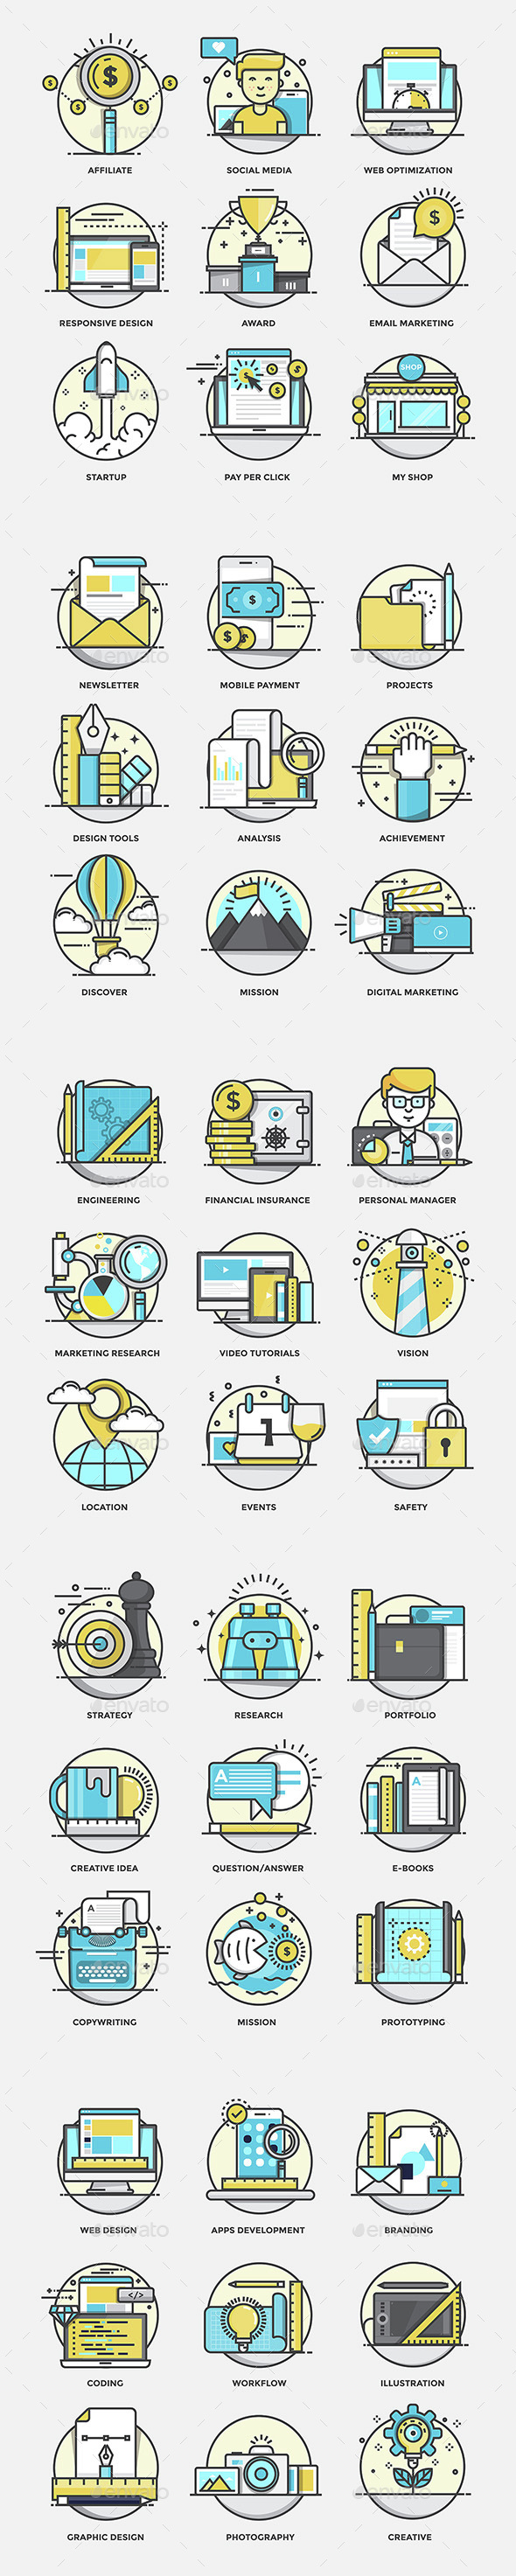 Modern Flat Color Line Designed Concepts Icons - Icons